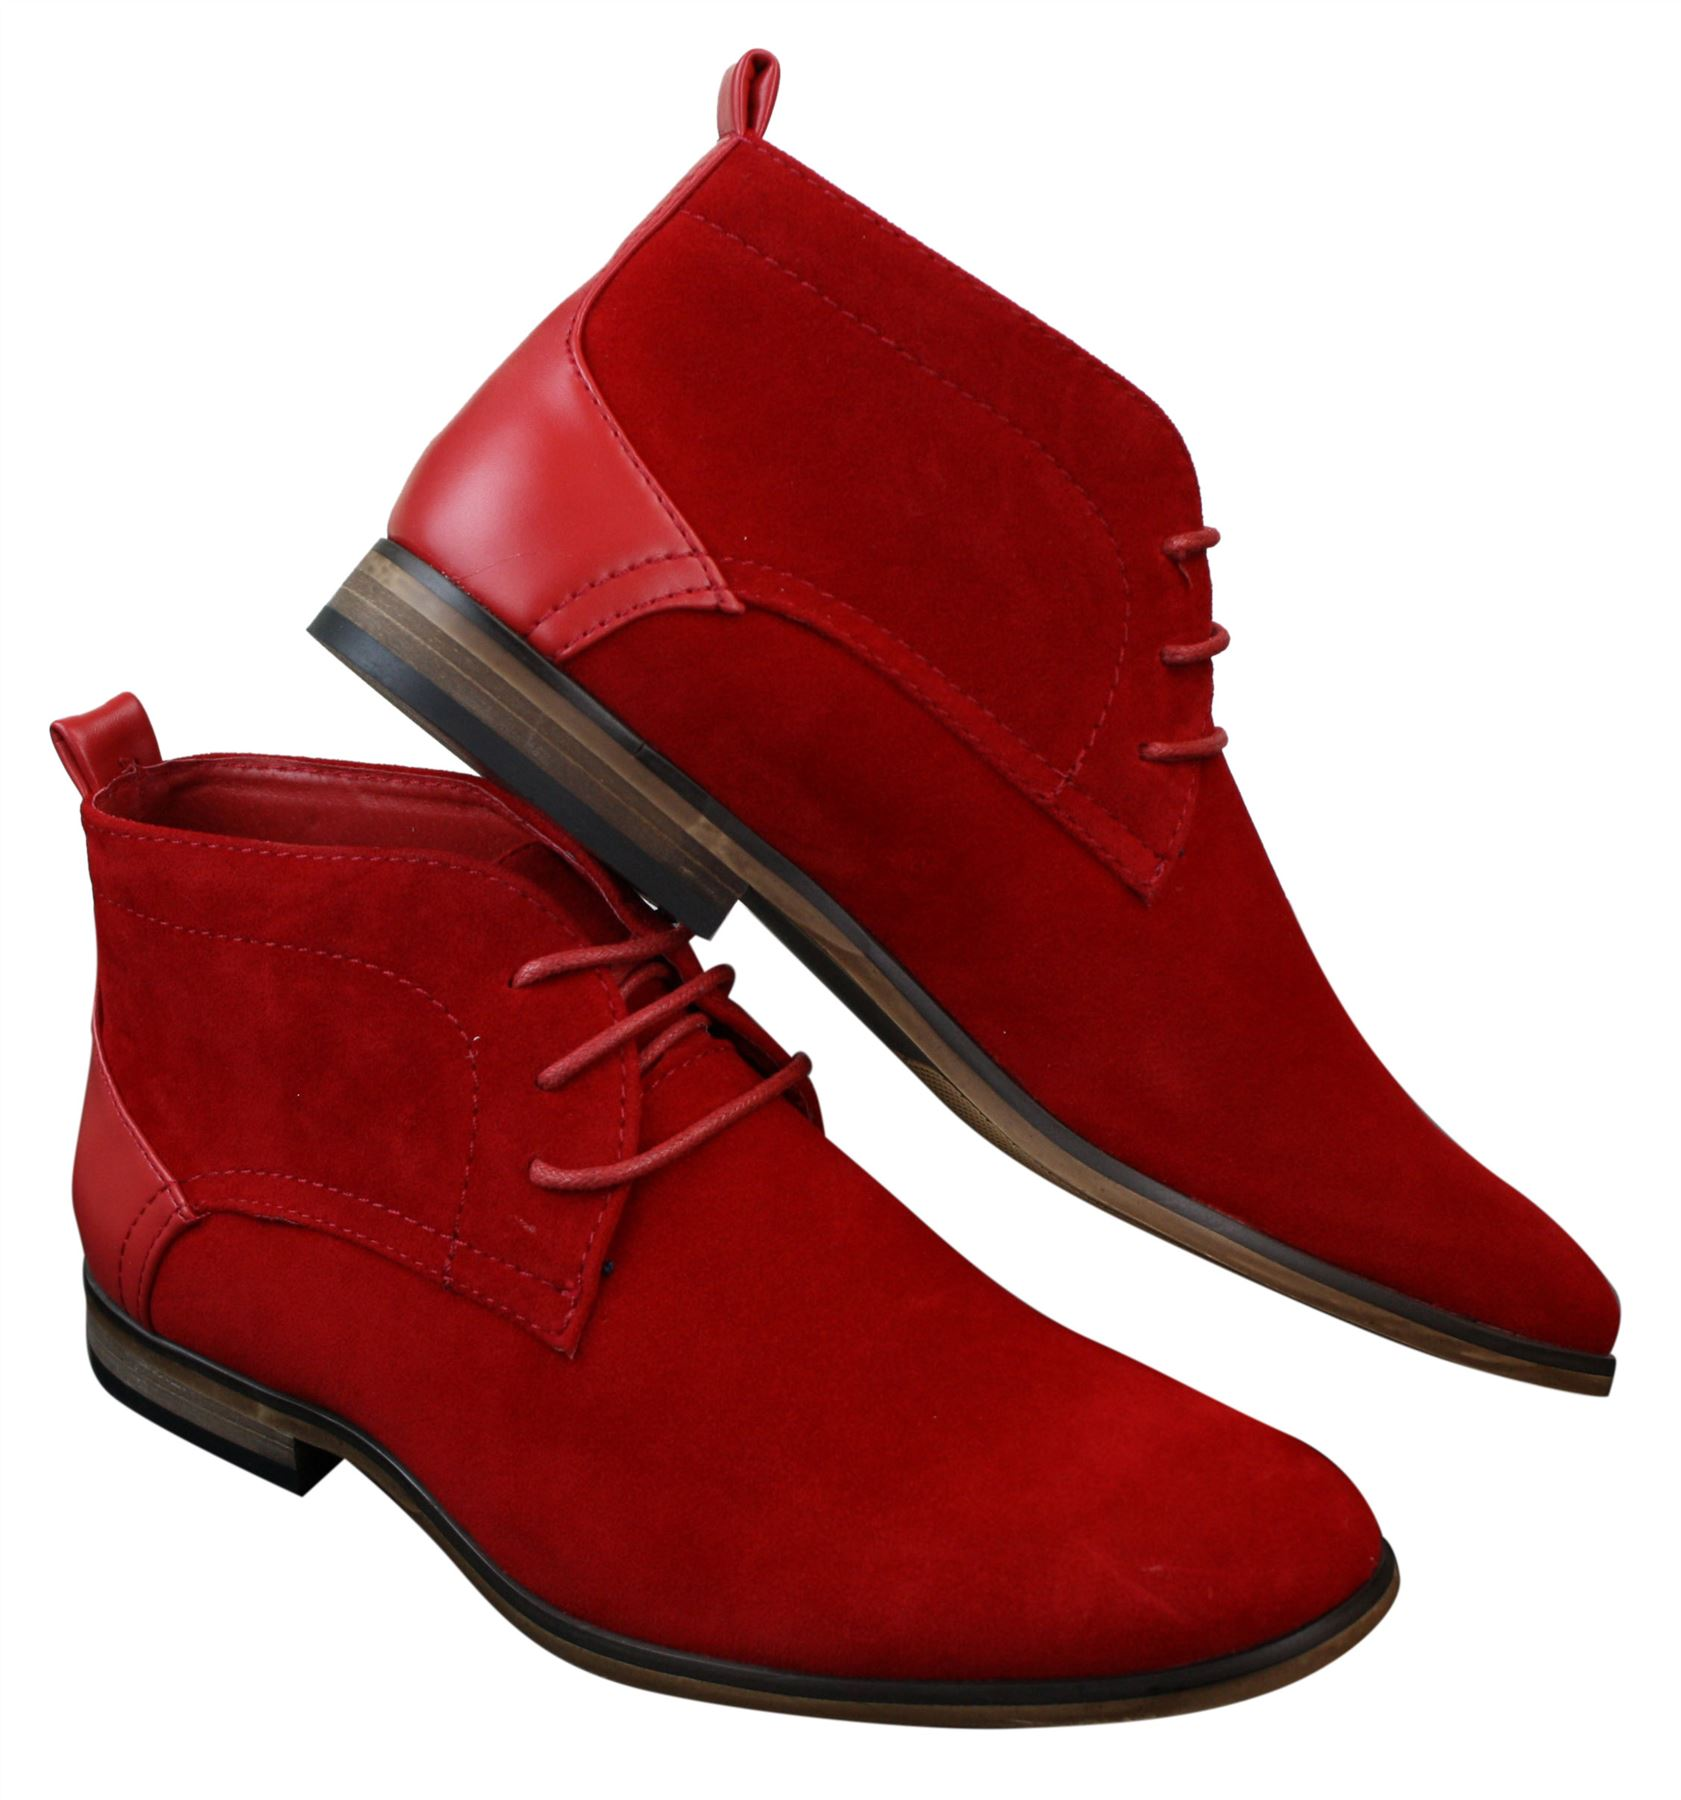 Mens Suede Desert Ankle Red Grey Brown Blue Boots Shoes Smart Laced